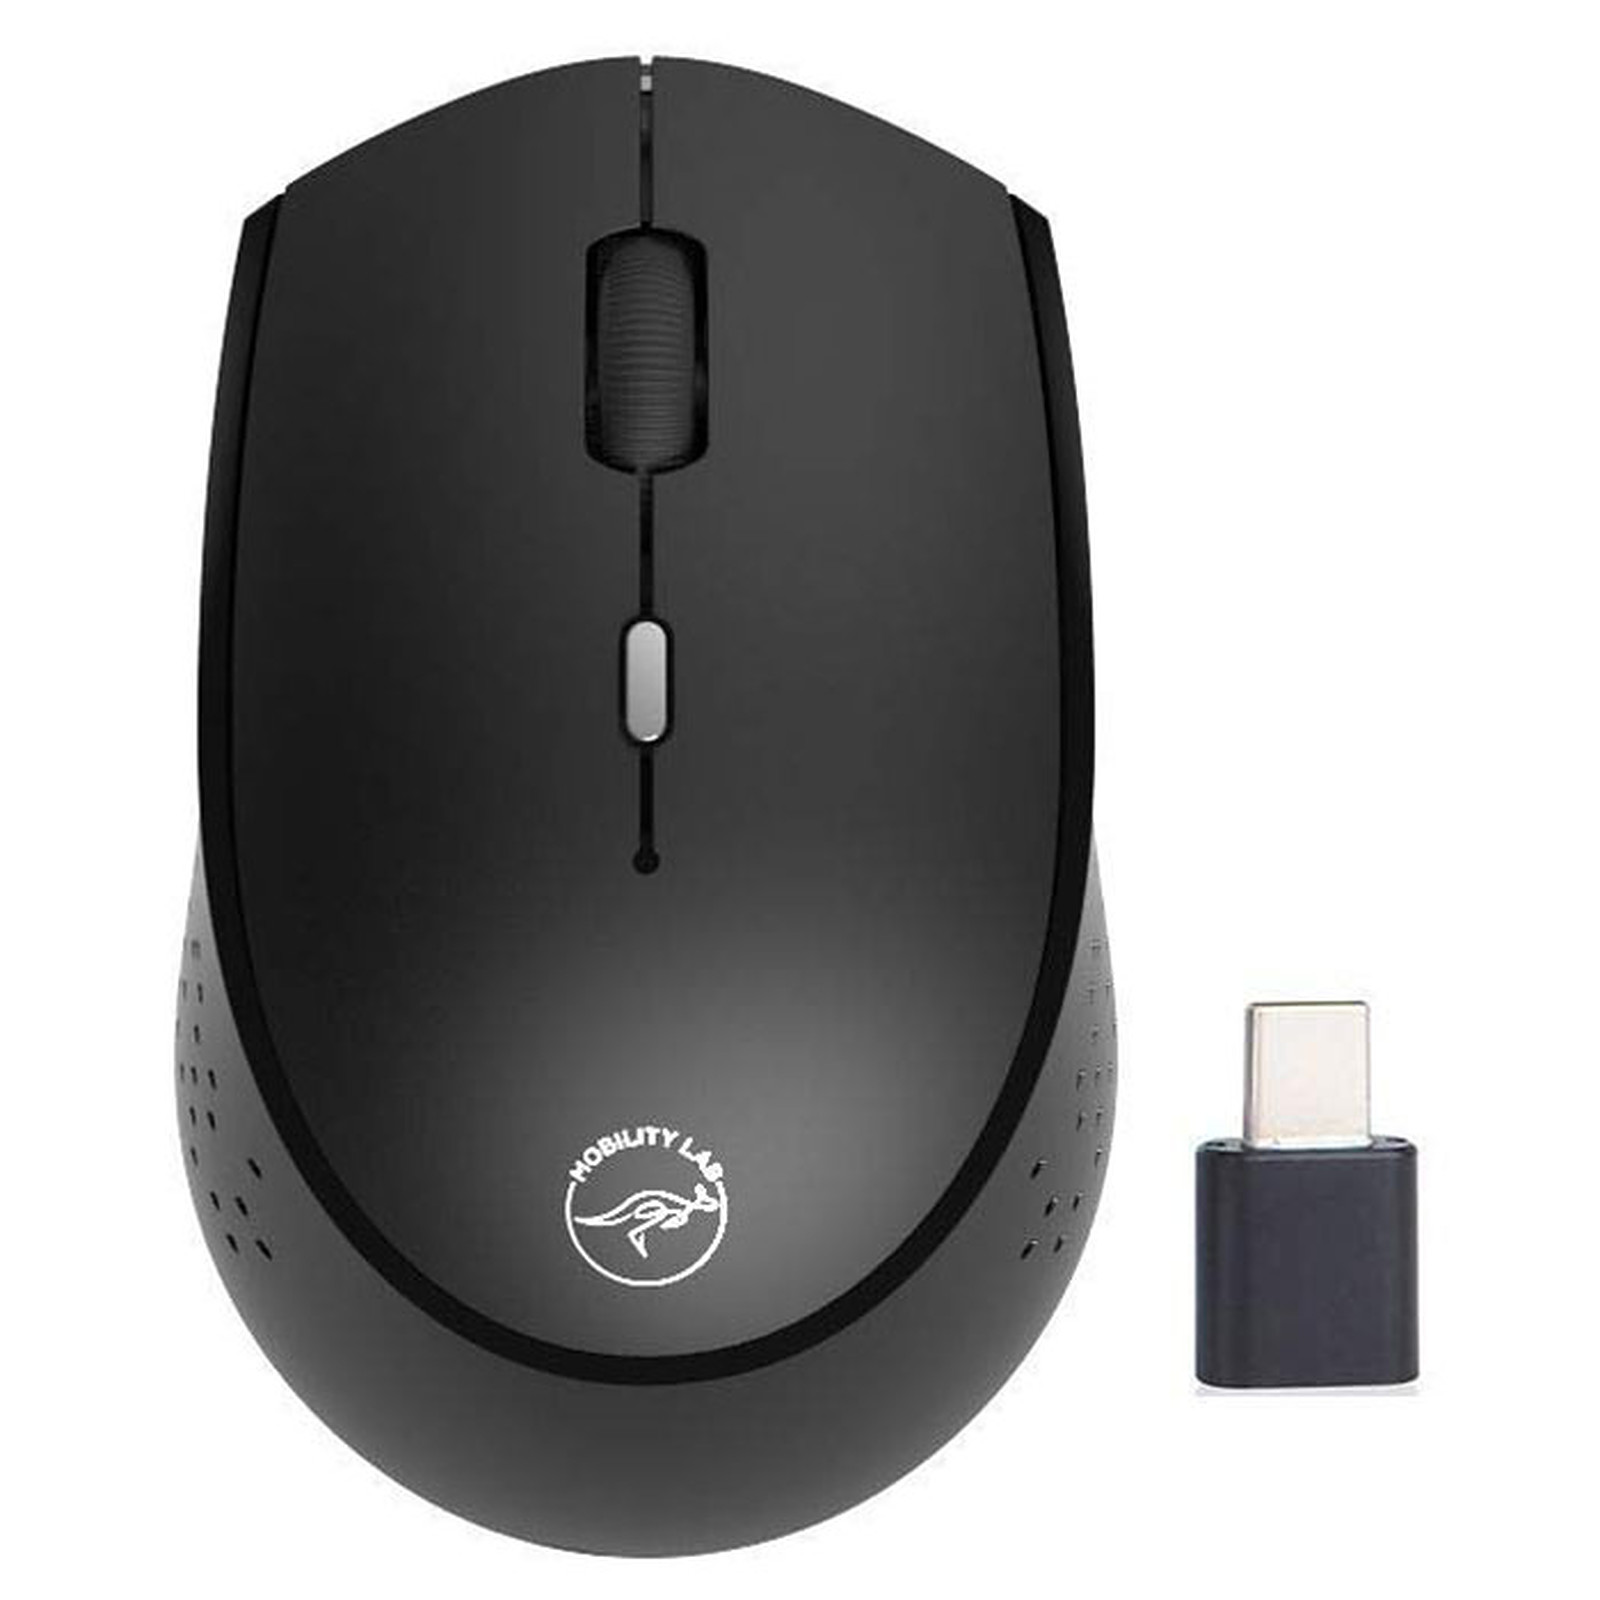 Mobility Lab Wireless USB-C Mouse